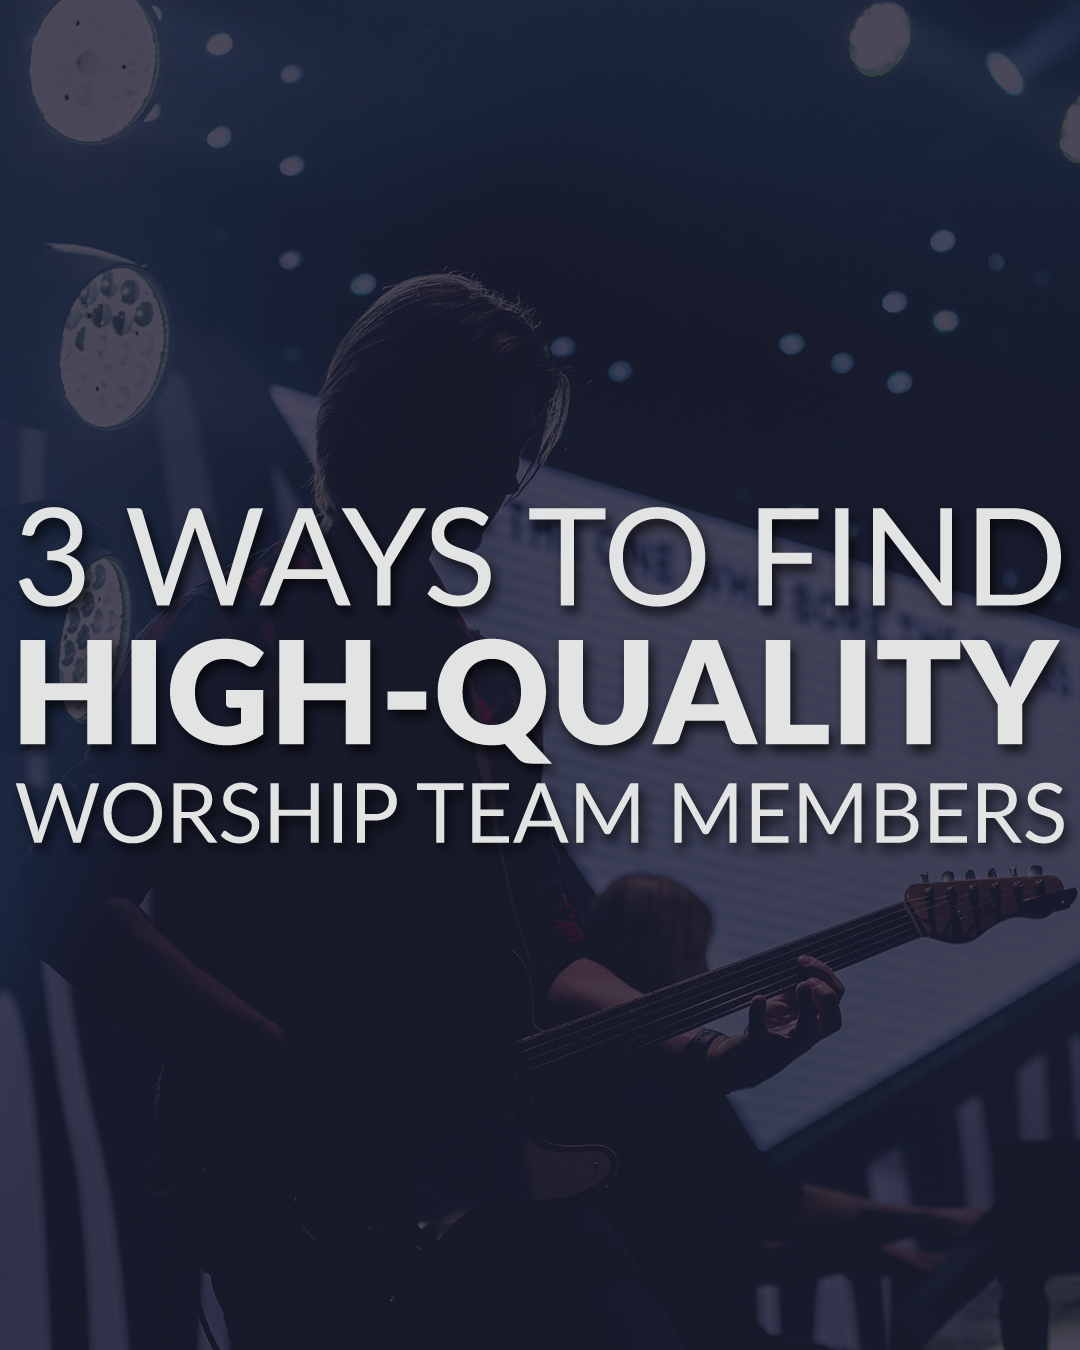 3 Ways To Find High-Quality Worship Team Members